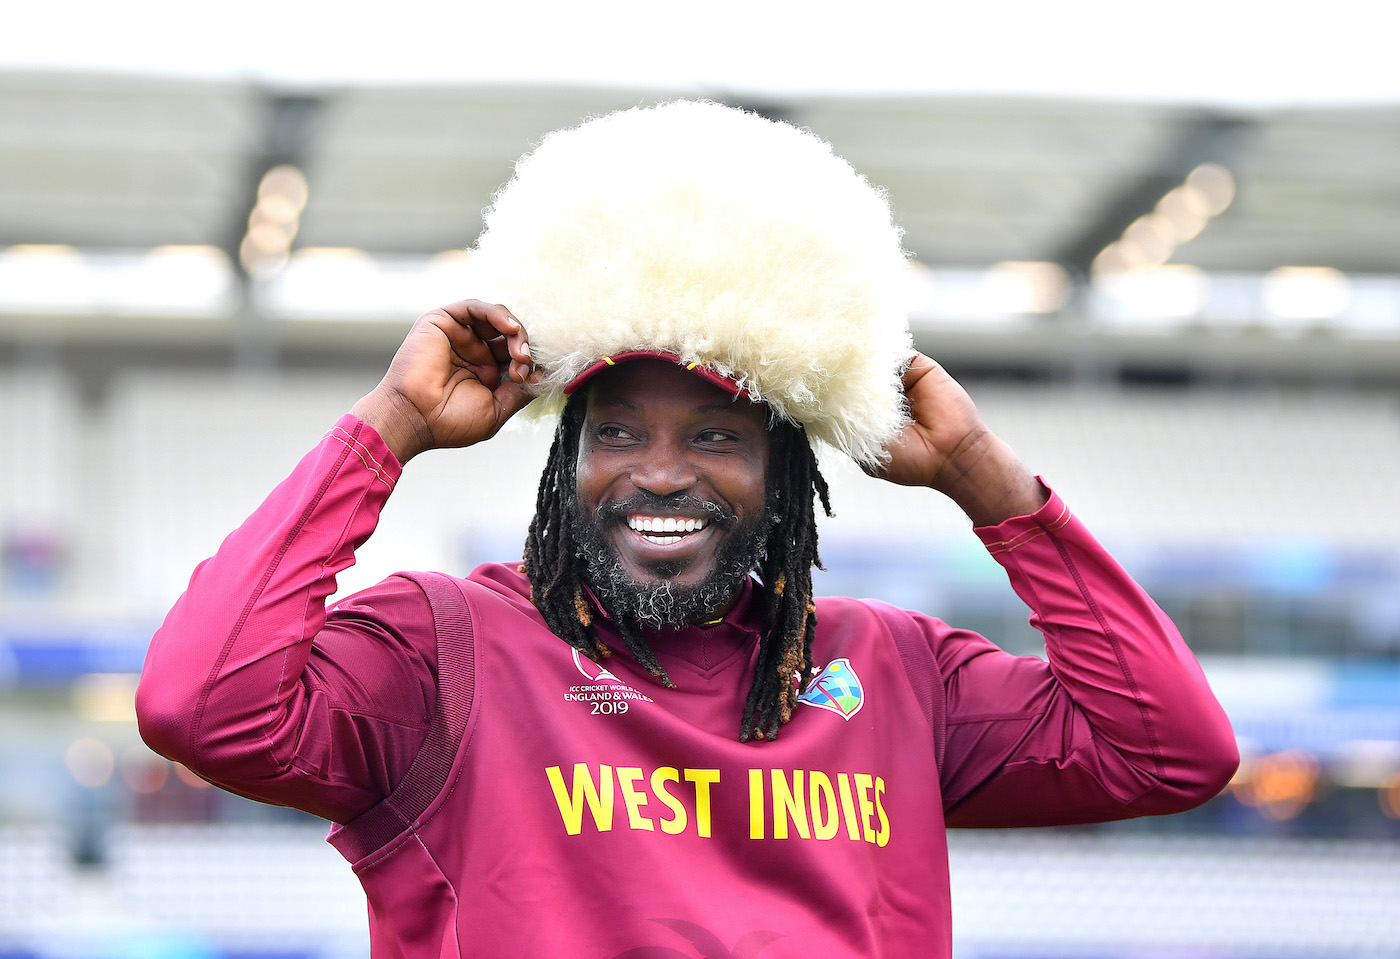 Chris Gayle caps West Indies' win over Afghanistan in the 2019 World Cup with a papakha borrowed from the opposition